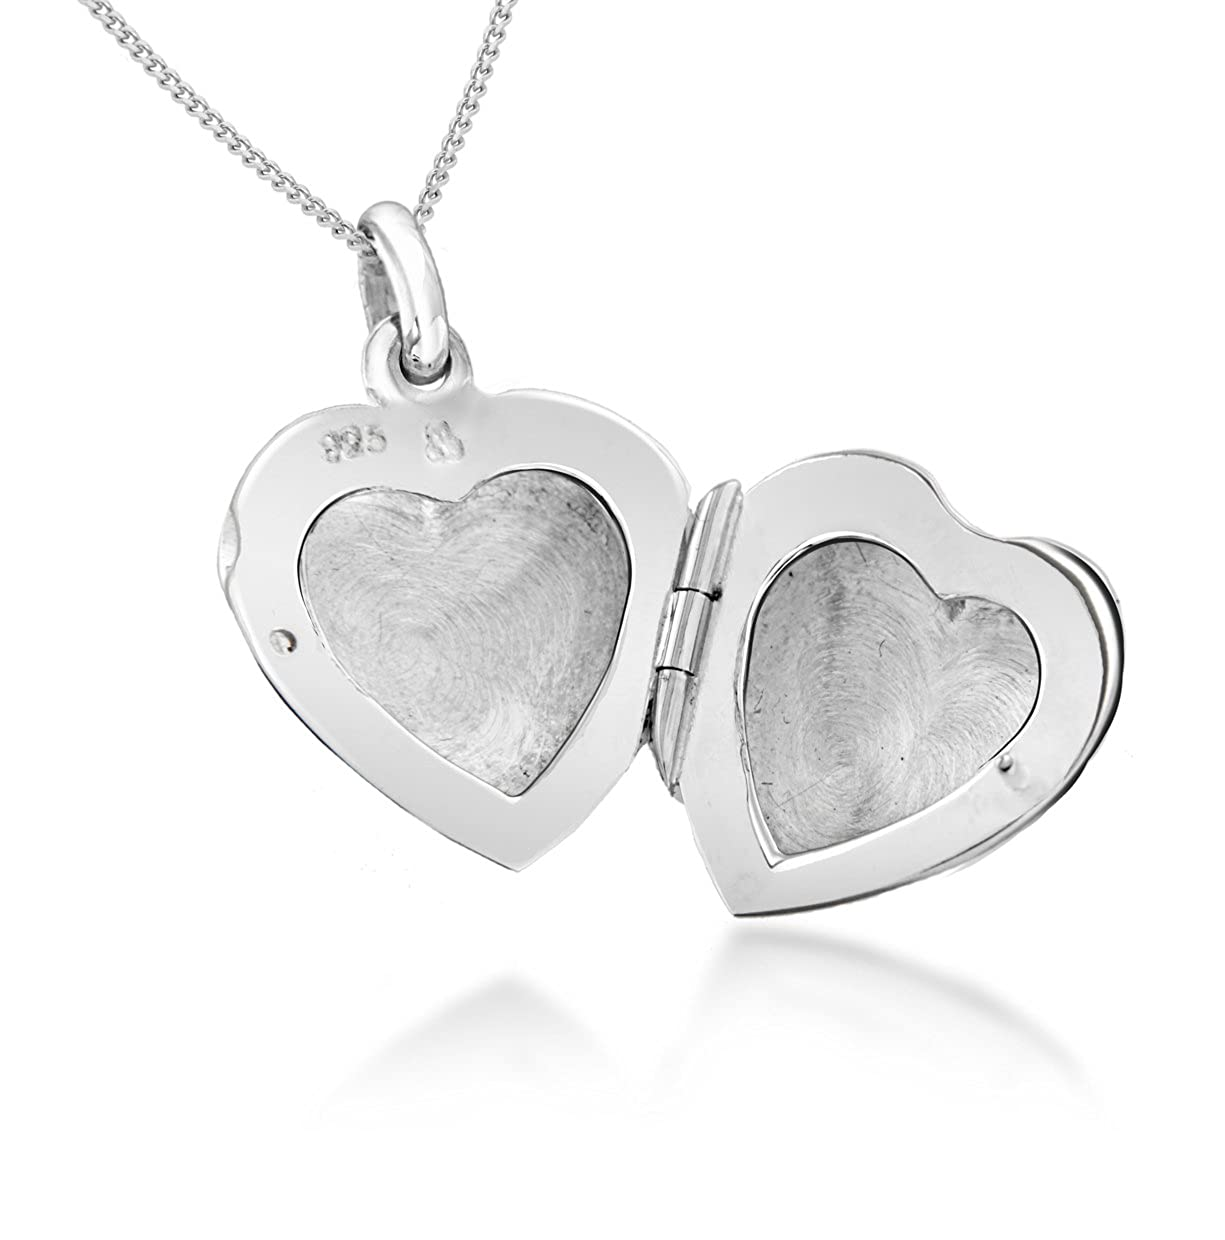 "Tuscany Silver Sterling Silver Heart Locket Pendant on Curb Chain of 46cm/18"" 8.43.5224 8.43.5224_Silver-46cm"